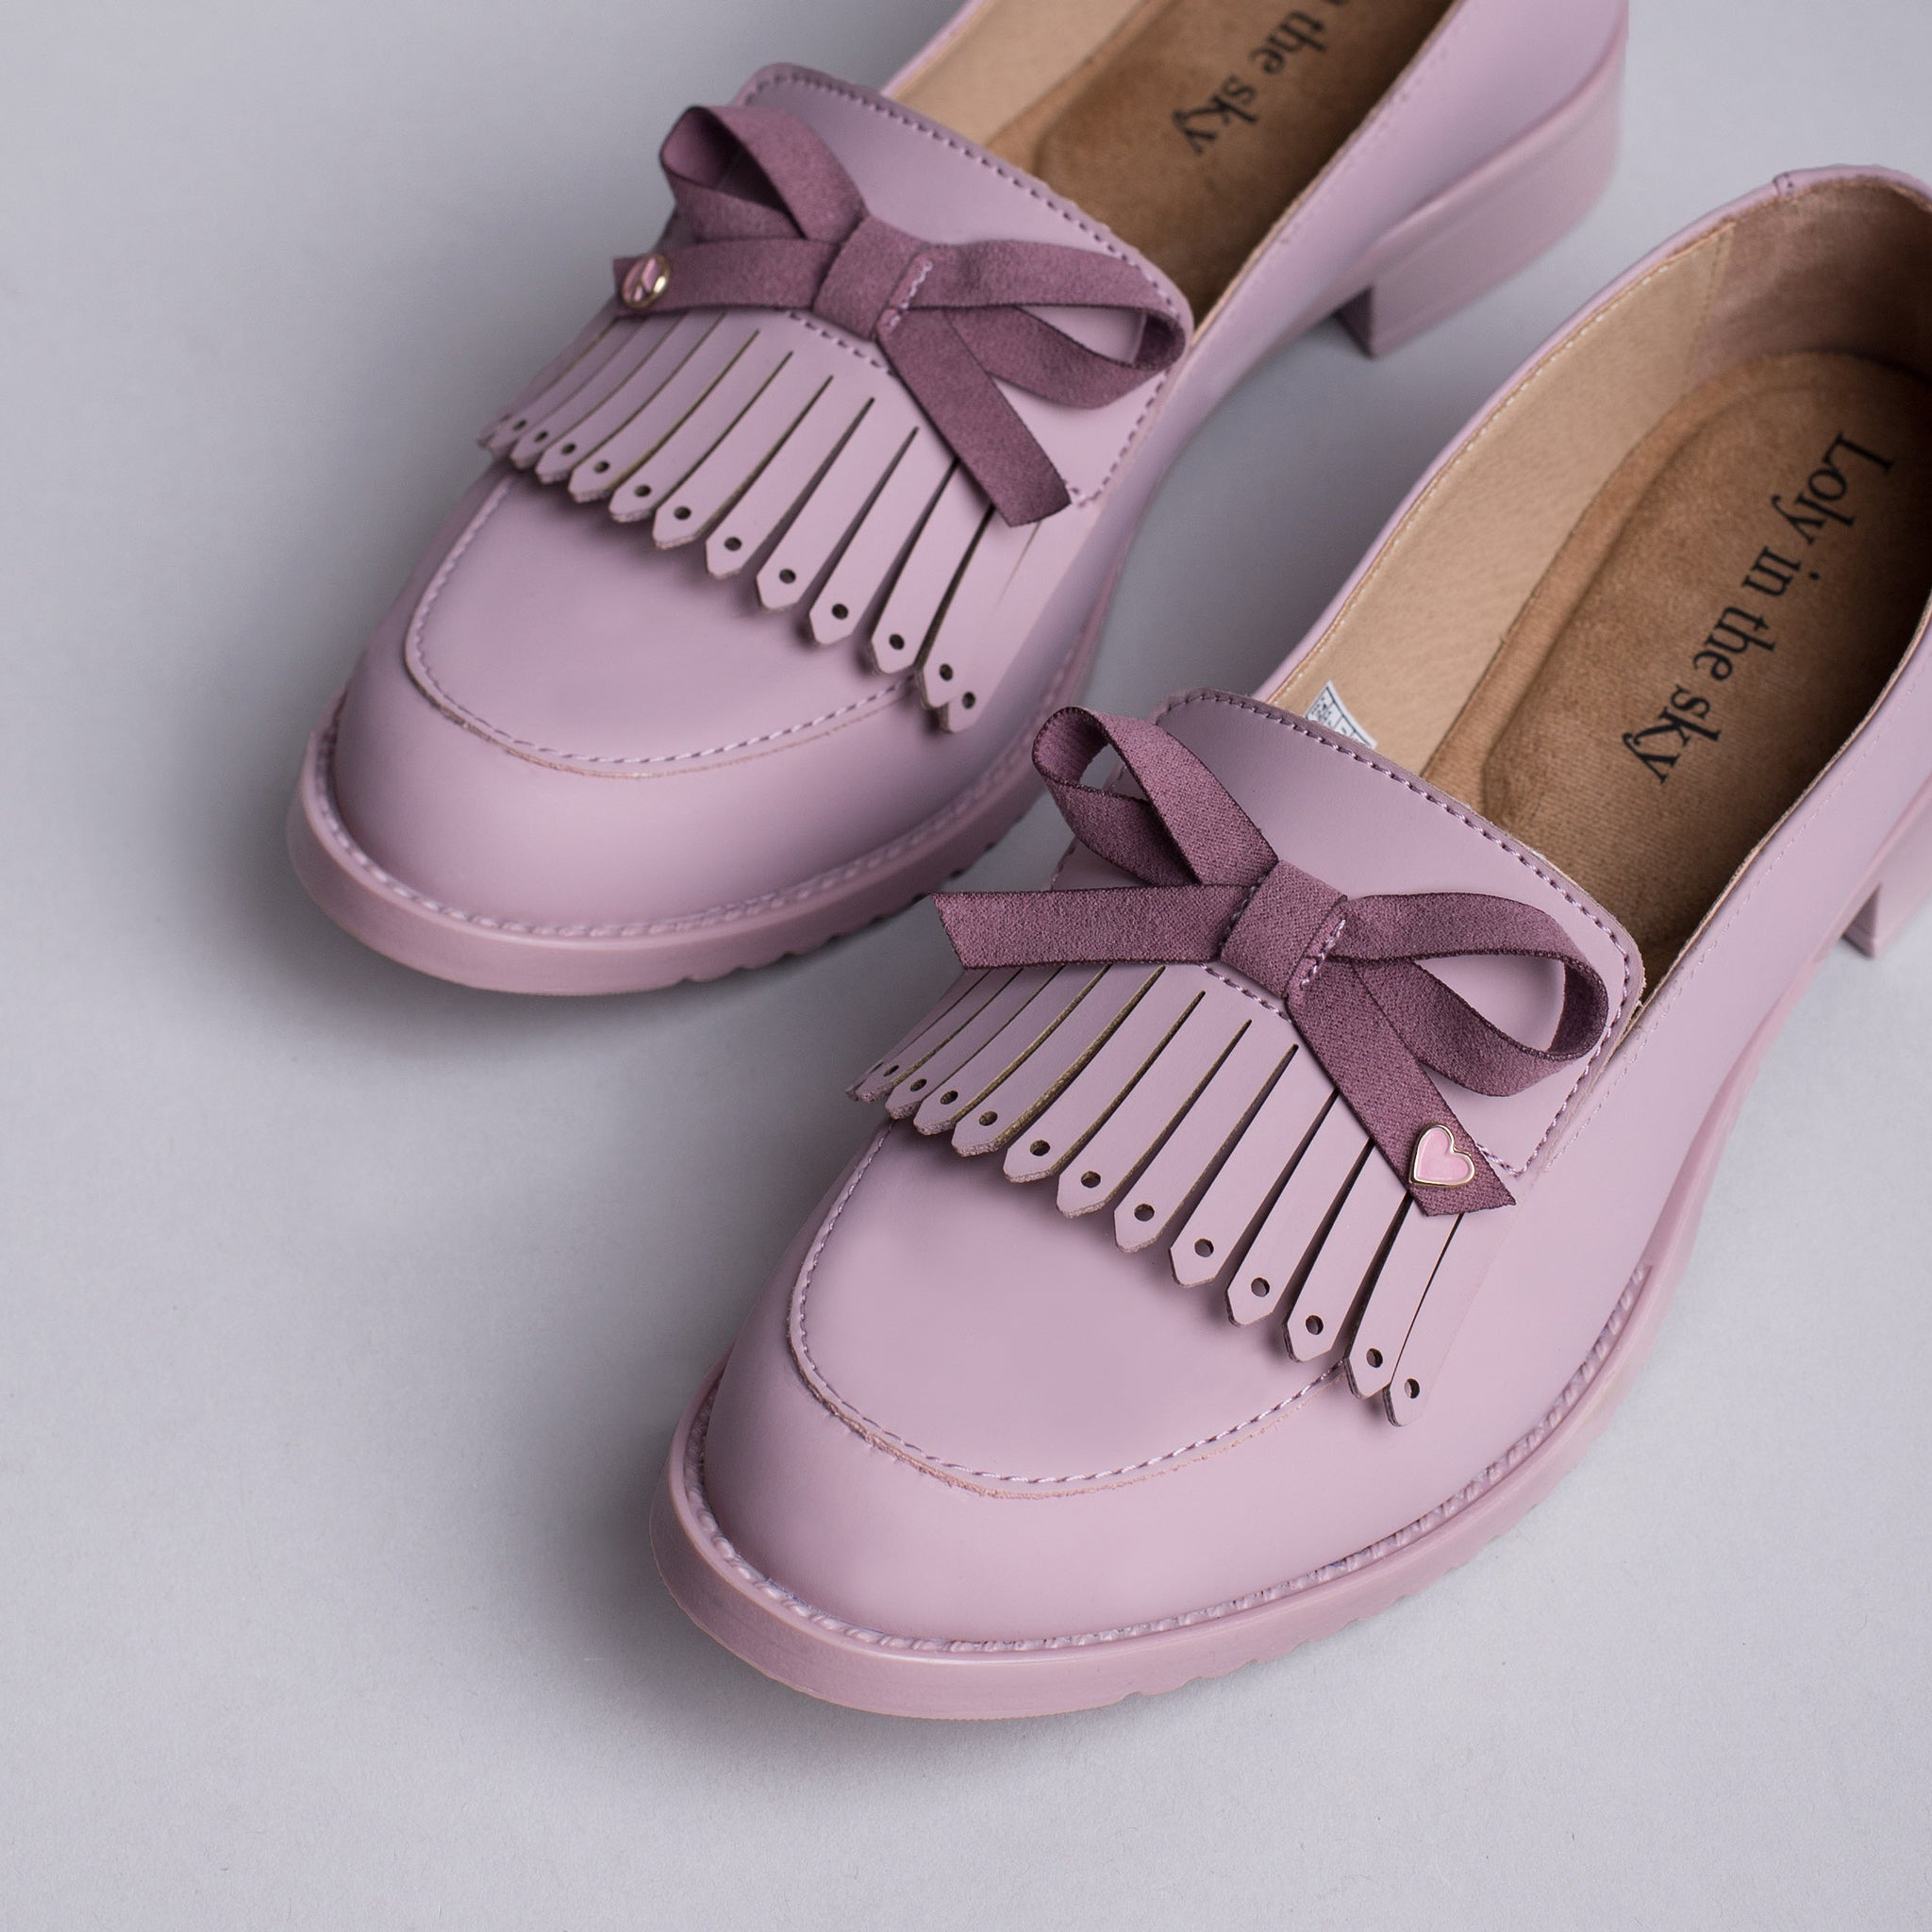 GIANNA | LOAFERS ROSA PARA MUJER | LOLY IN THE SKY